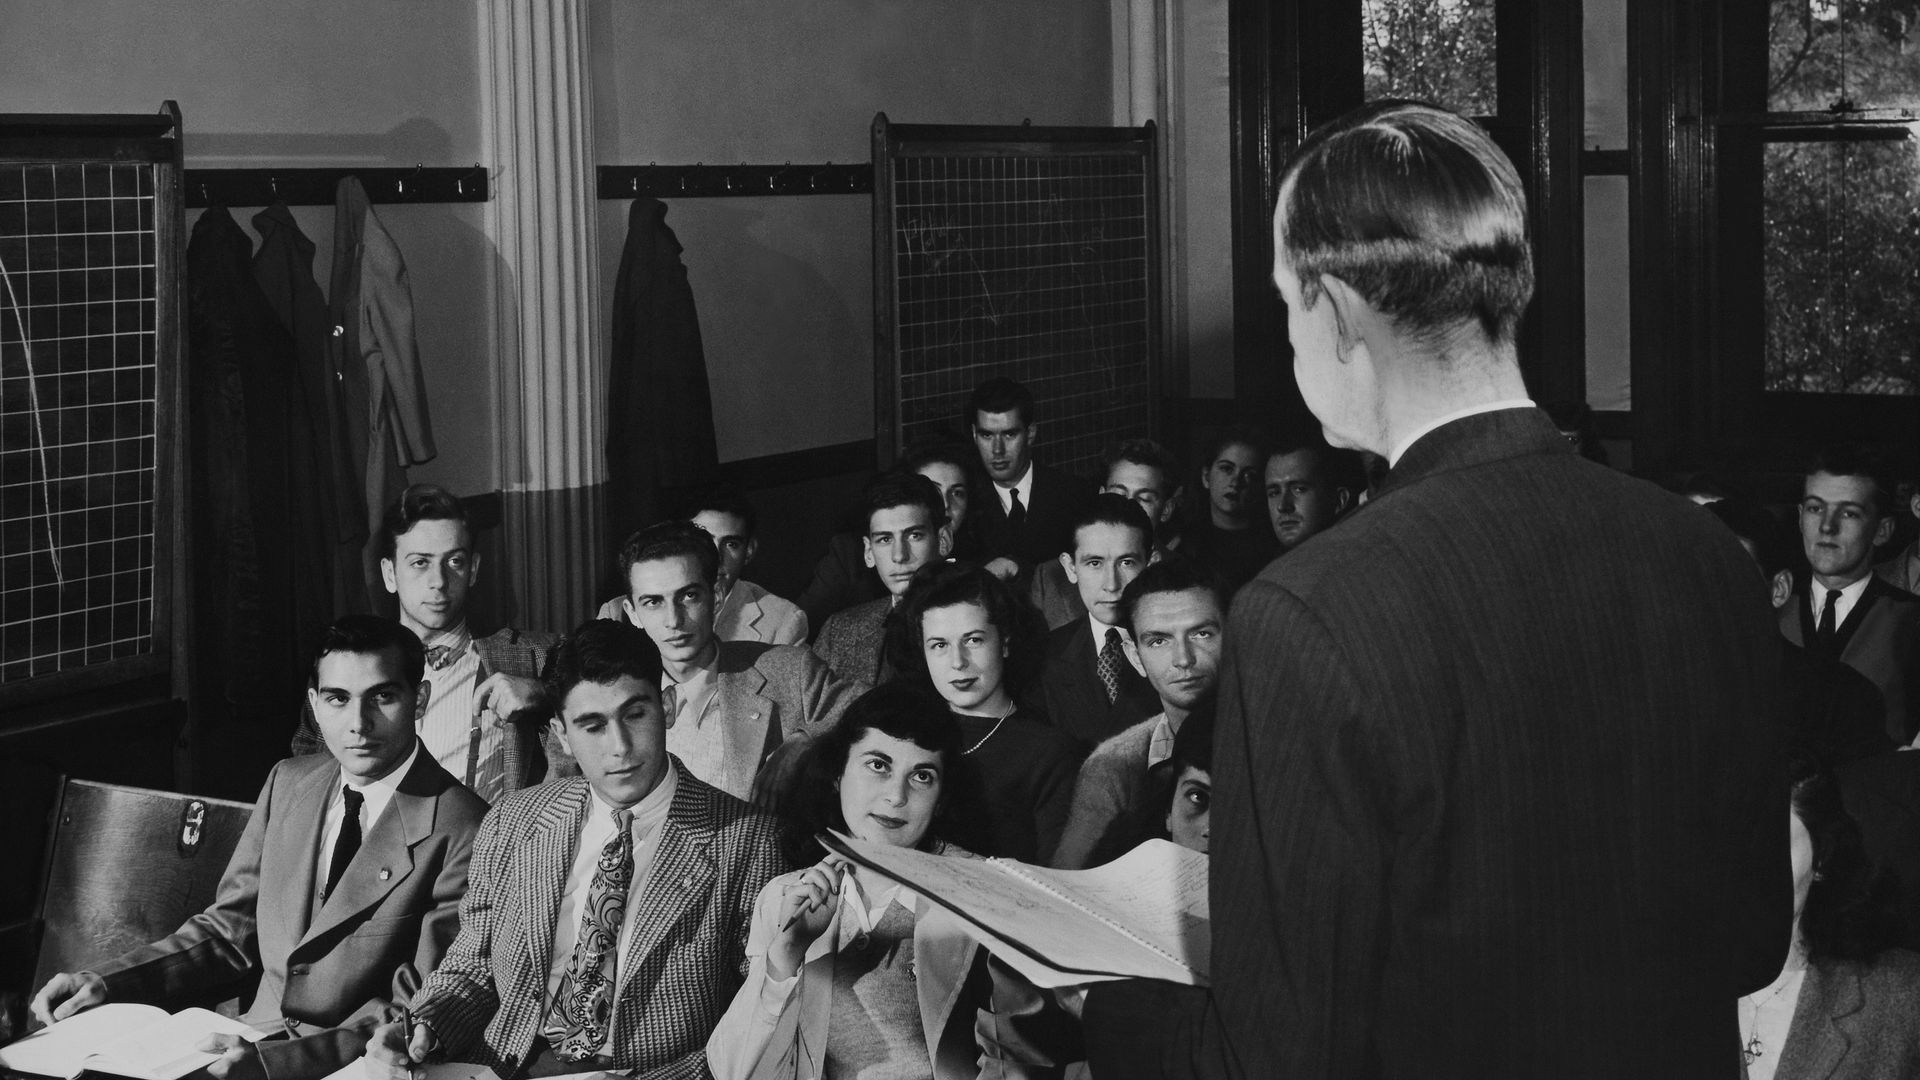 A lecturer stands before rows of students in a black and white photo